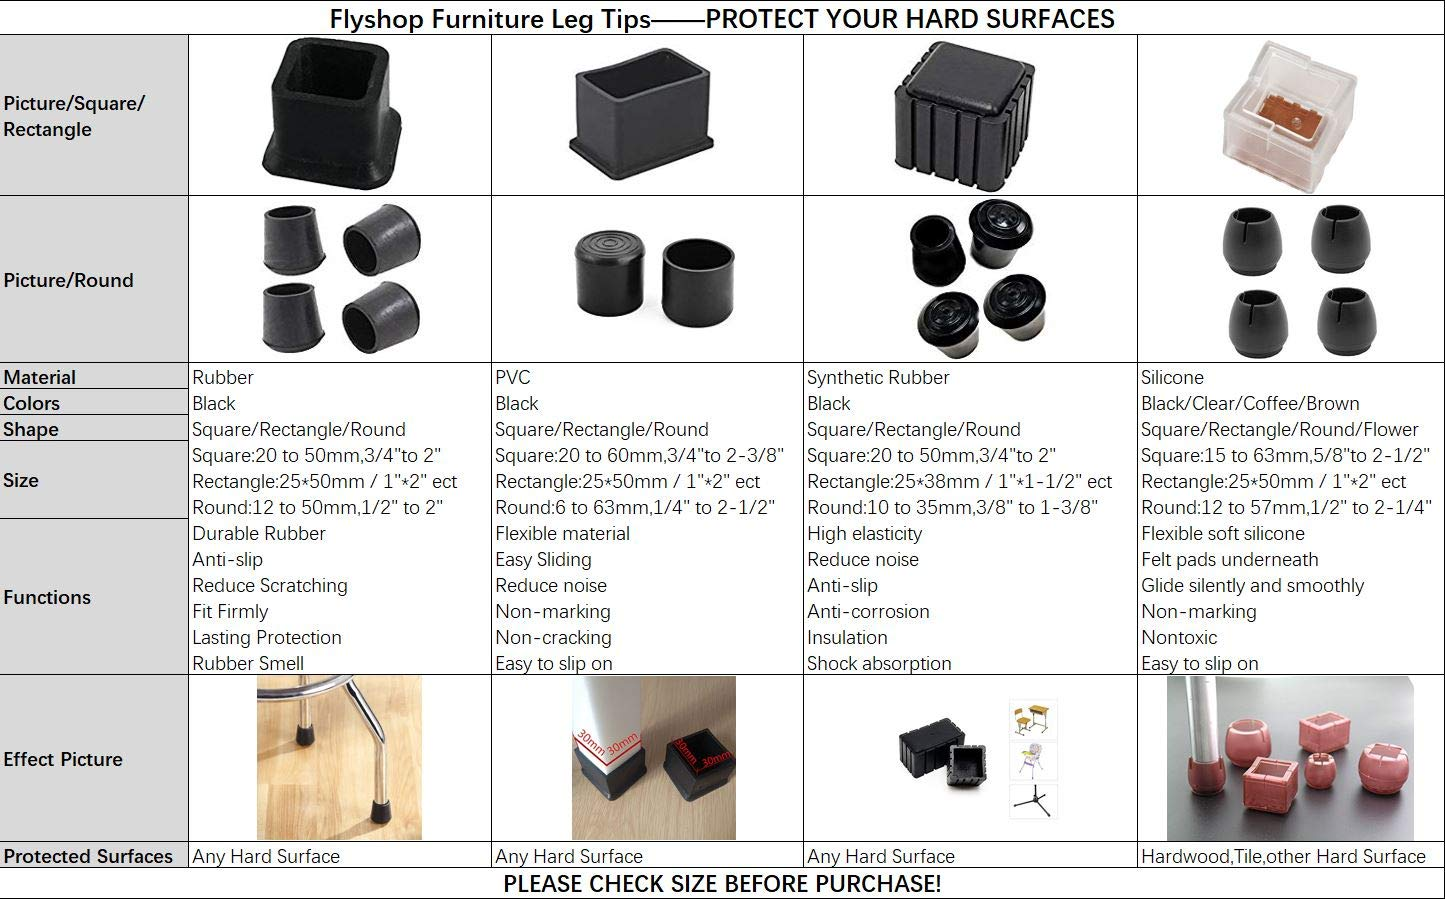 Flyshop 1-1/2 Inches Large Chair Leg Tips Caps Feet Pads PVC Floor Protectors Round Furniture Table Covers 16Pcs